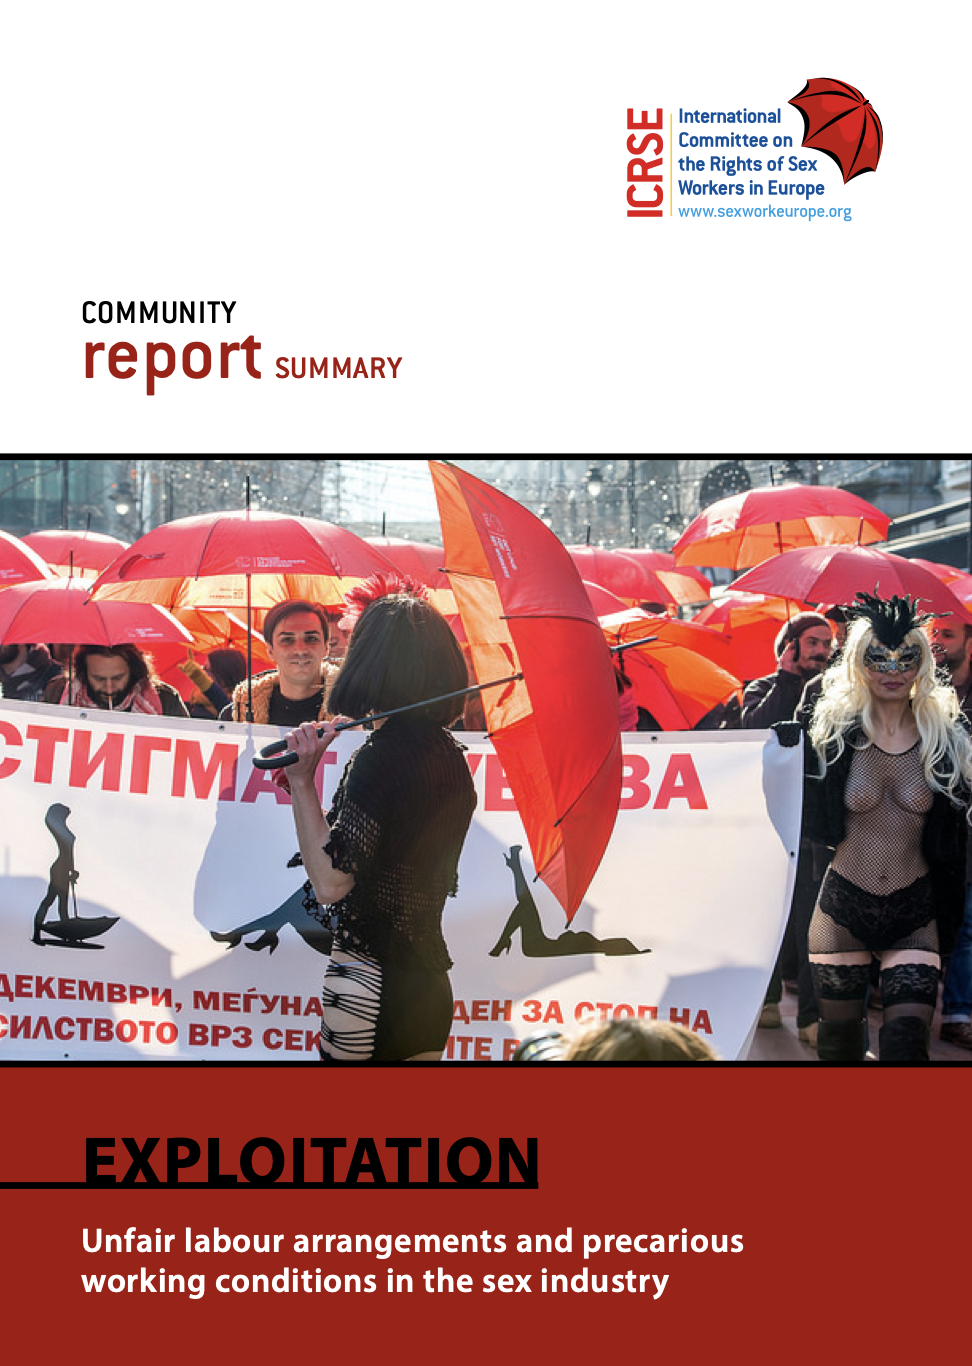 Community Report on Exploitation in the Sex Industry